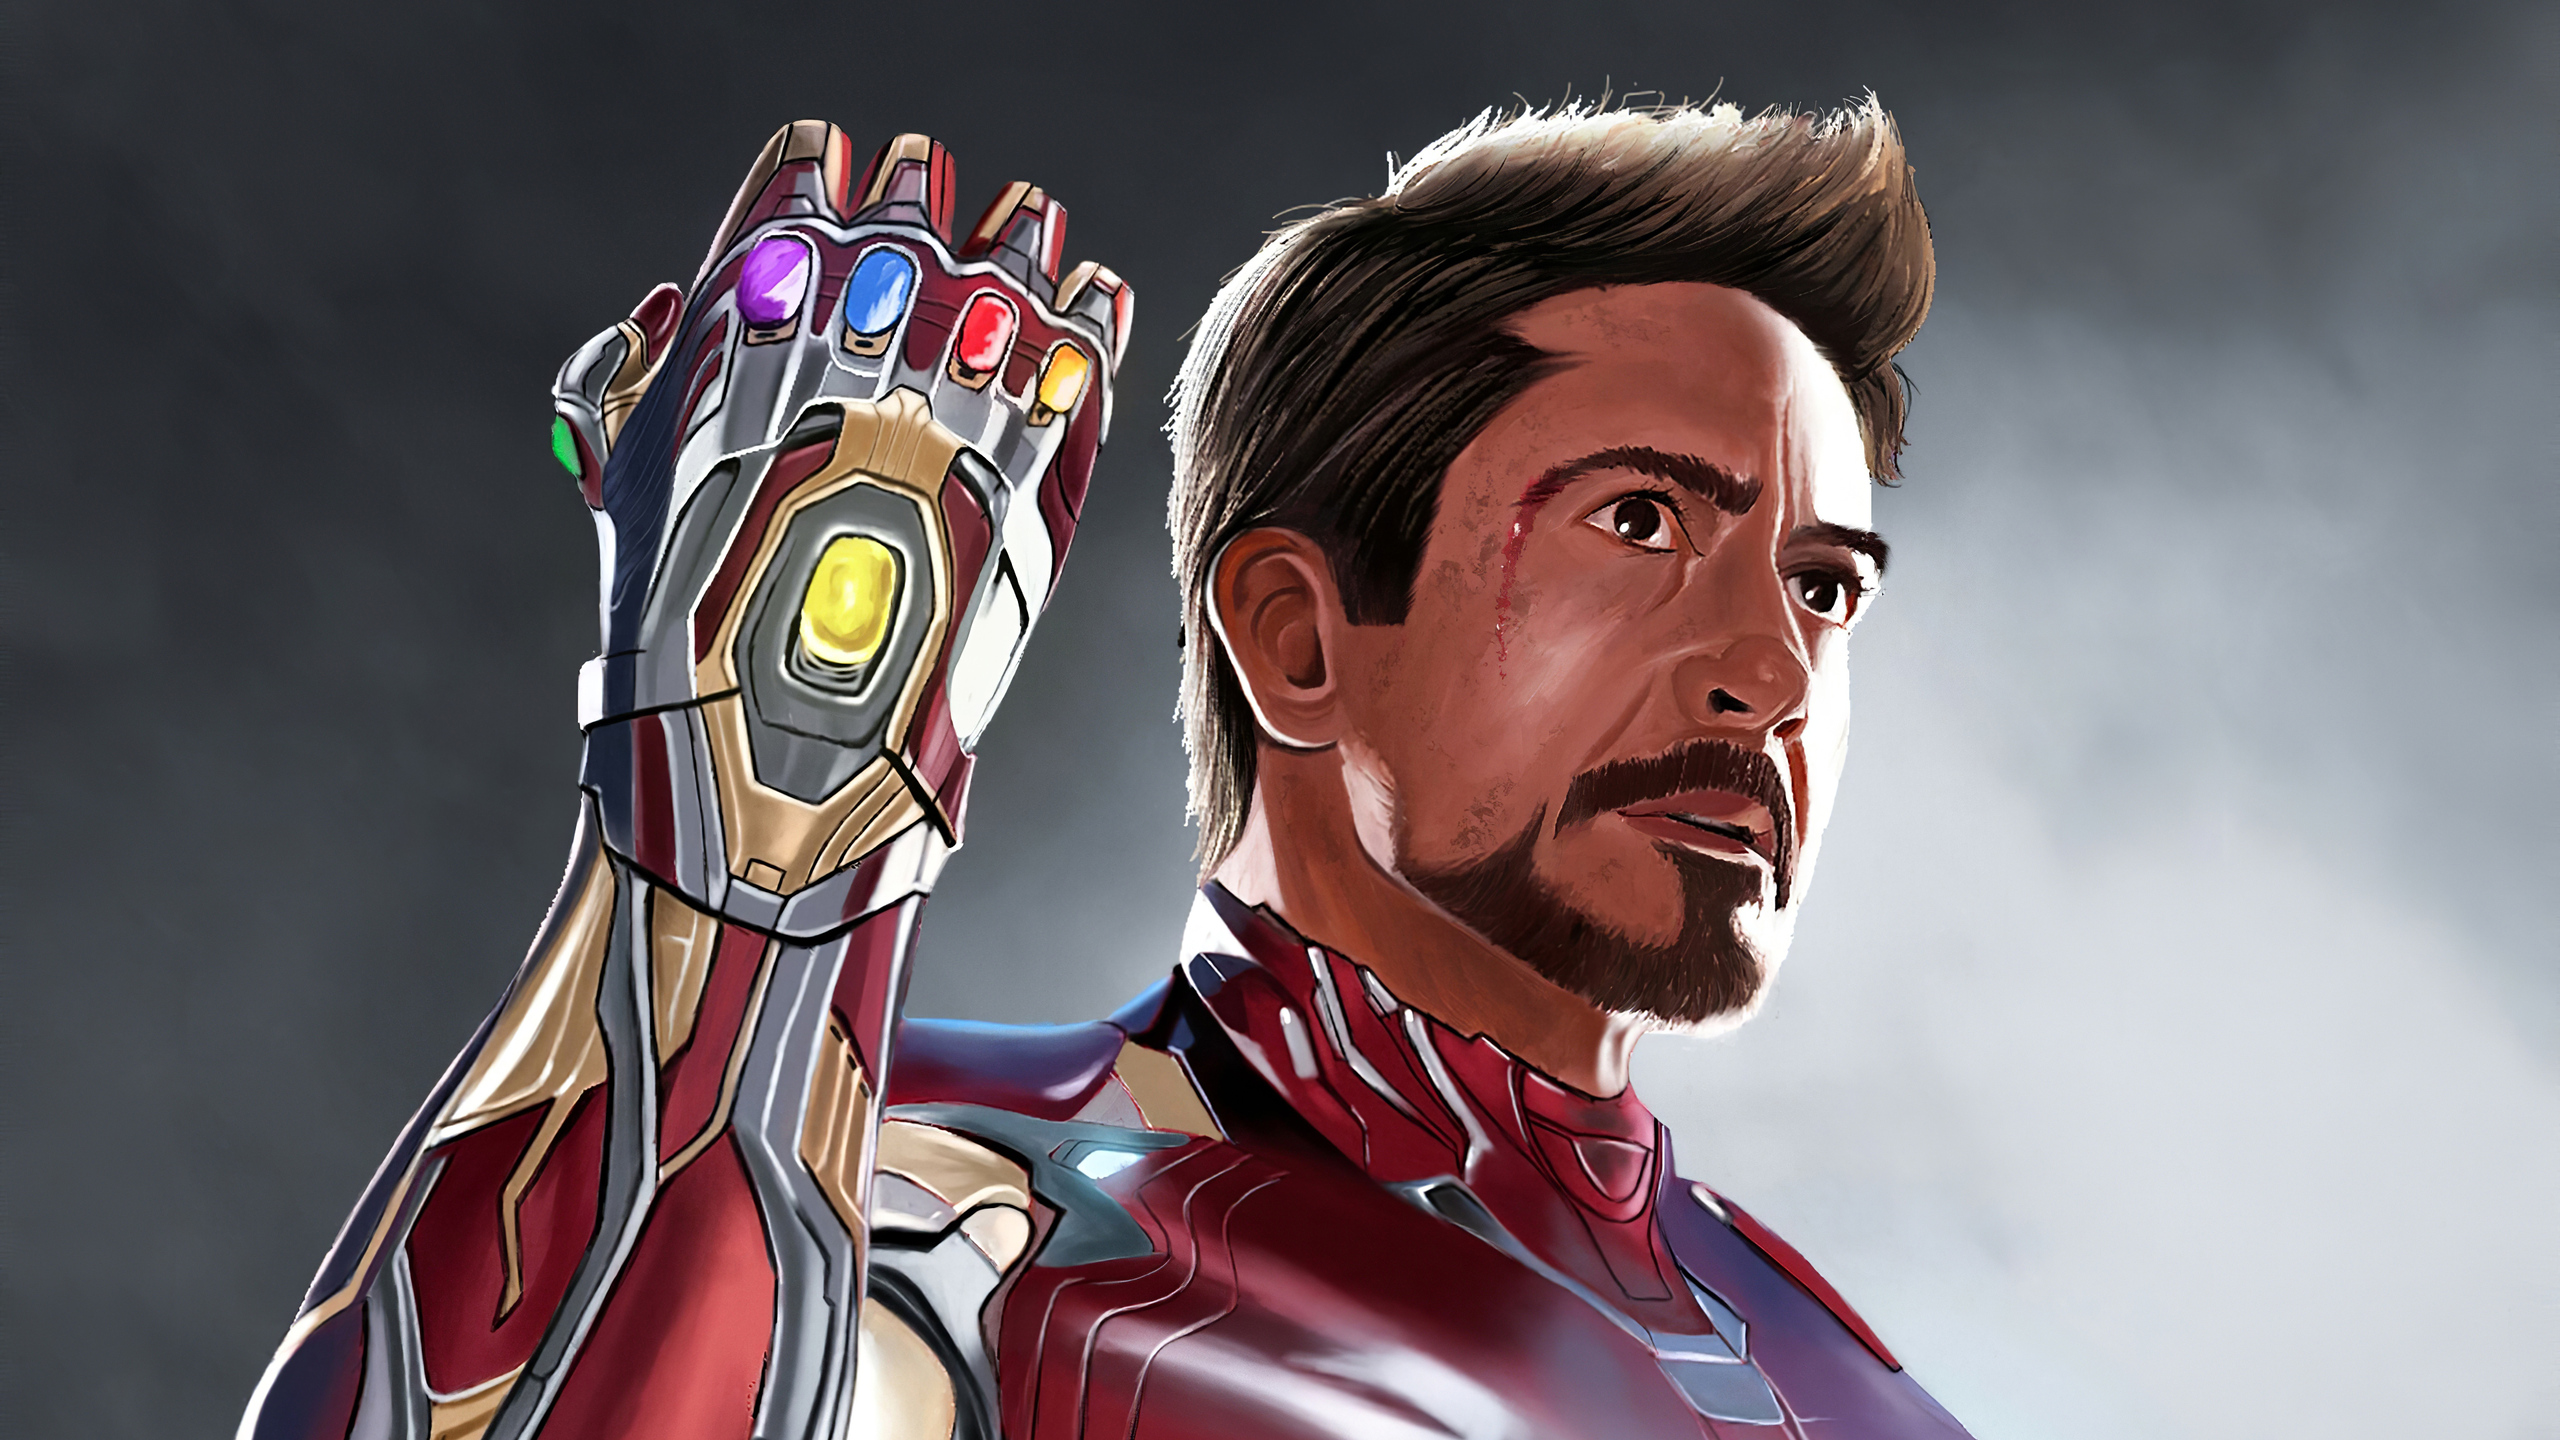 iron-man-art4k-2020-oc.jpg